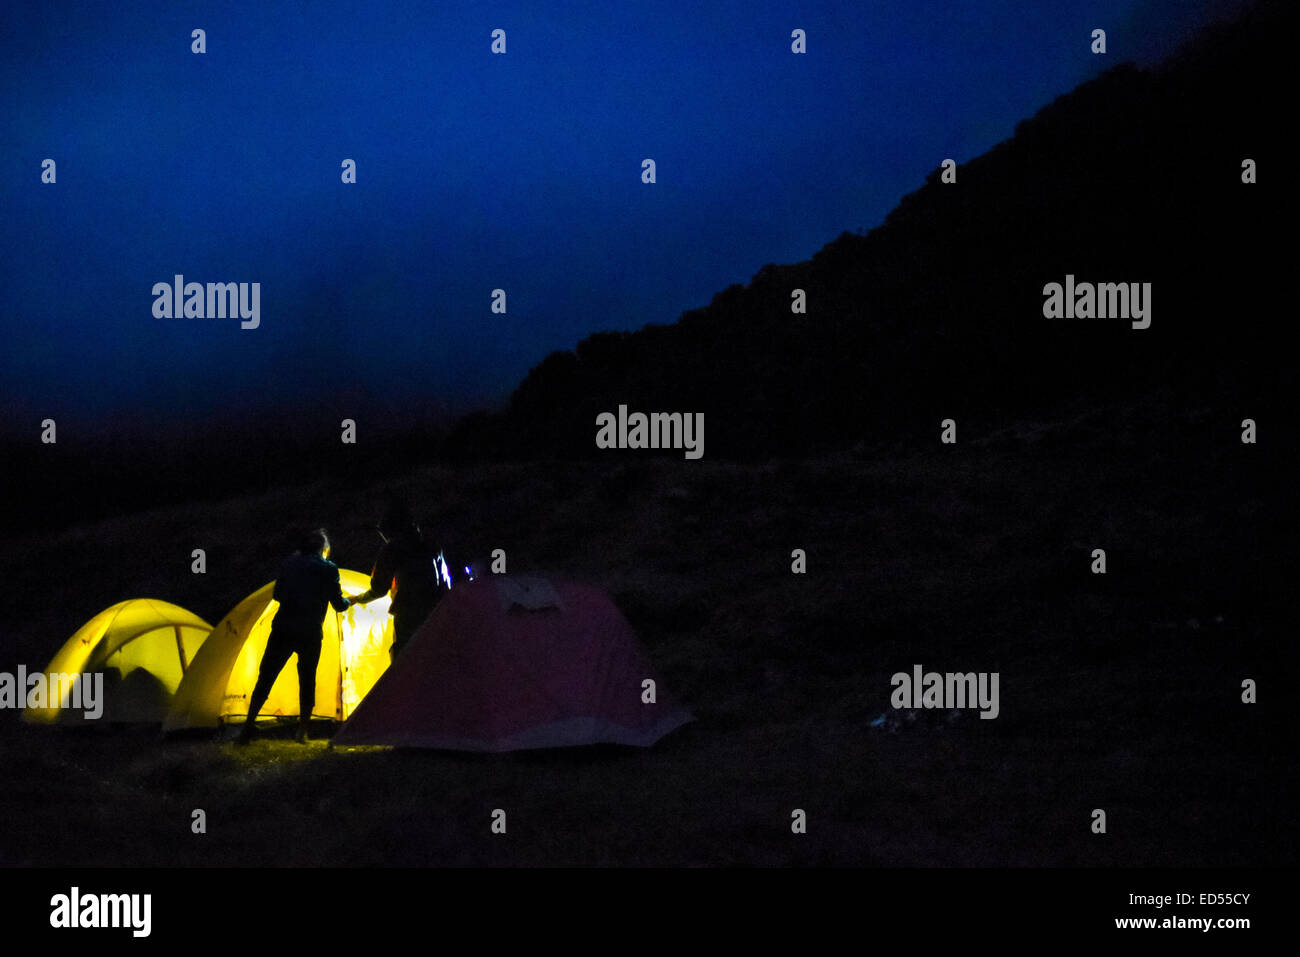 A couple build their camp at night in Suryakencana meadow, Gede Pangrango National Park. - Stock Image